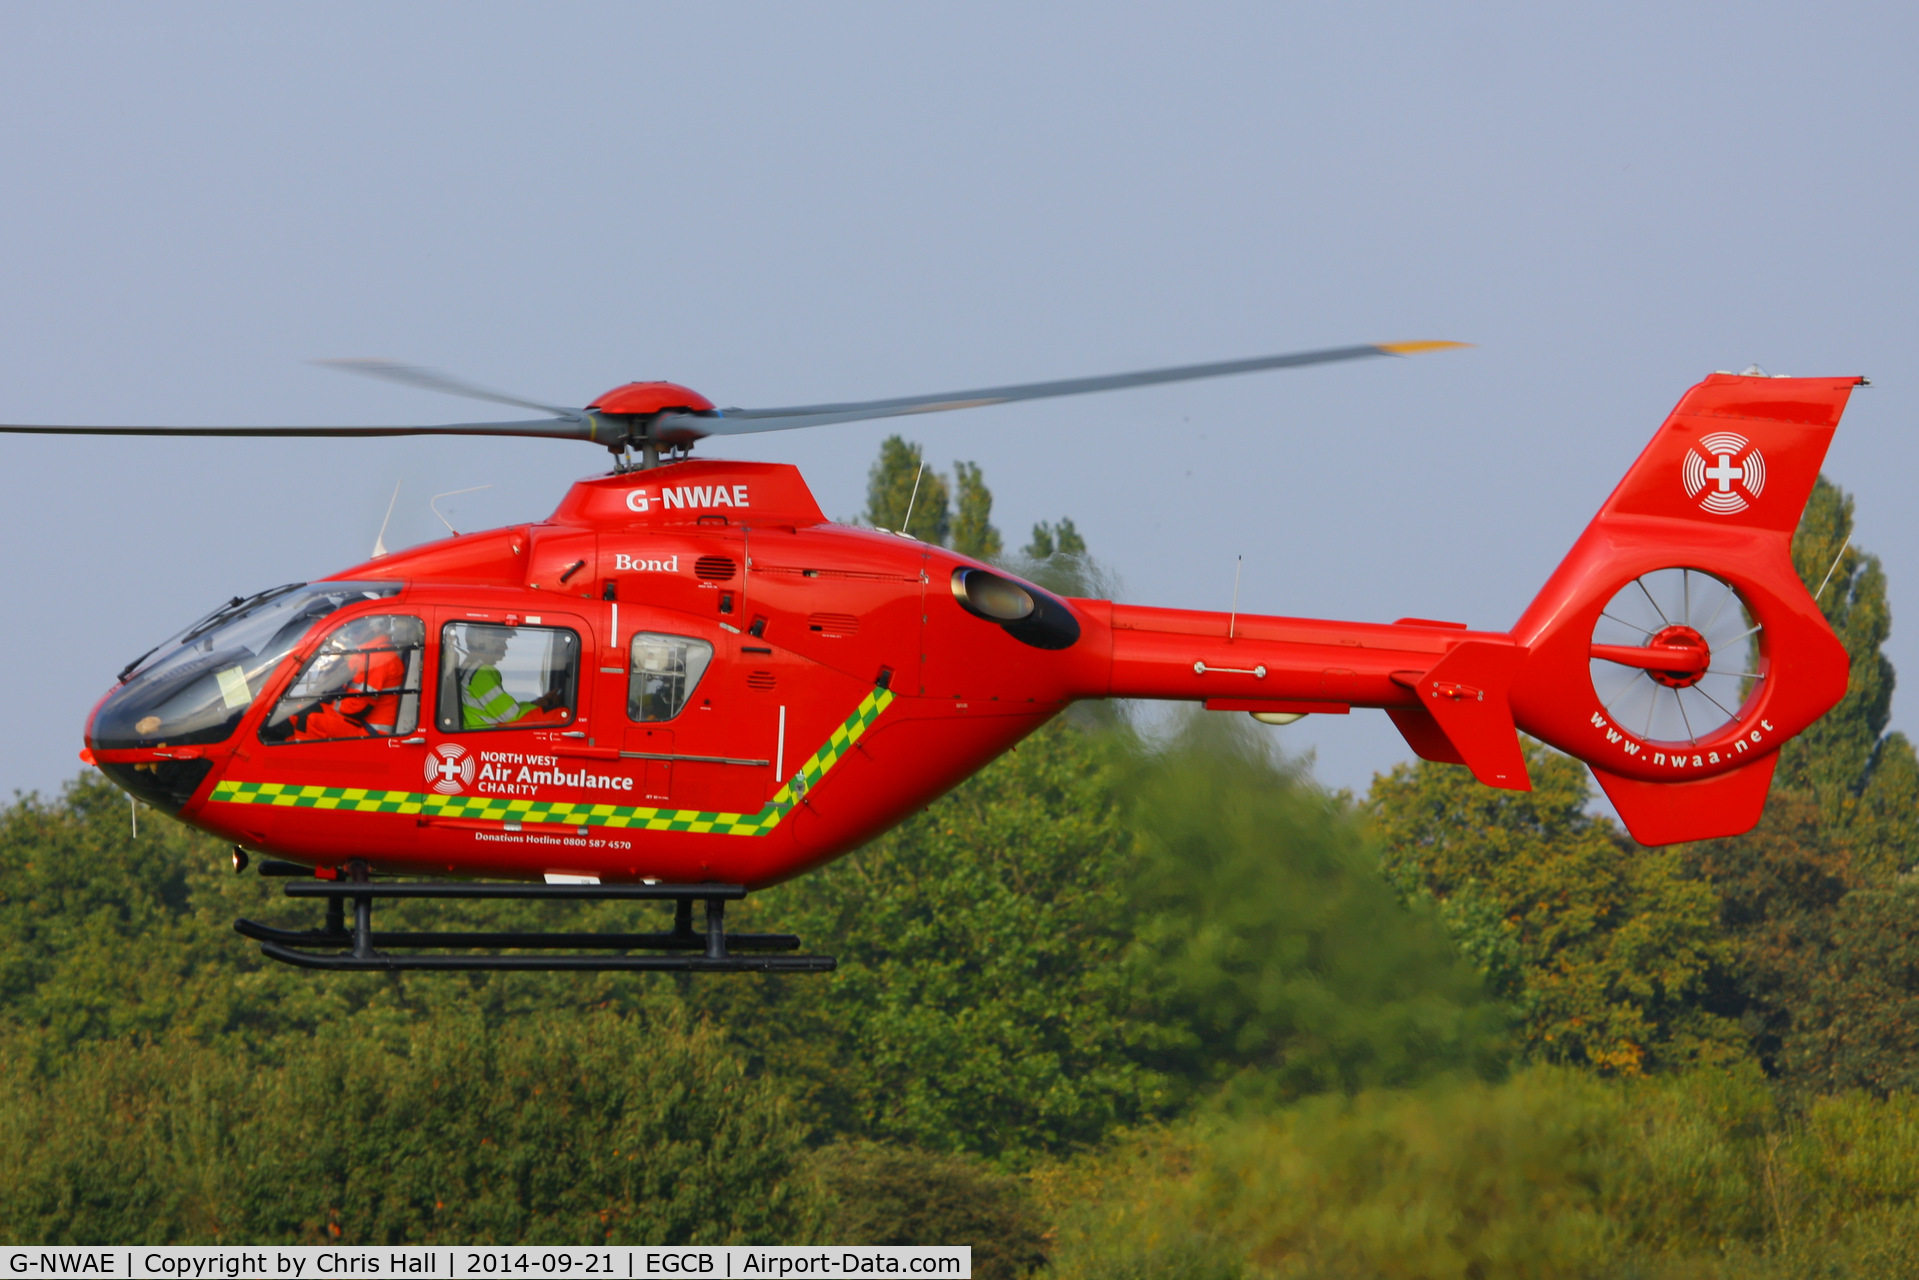 G-NWAE, 2003 Eurocopter EC-135T-2 C/N 0312, North West Air Ambulance